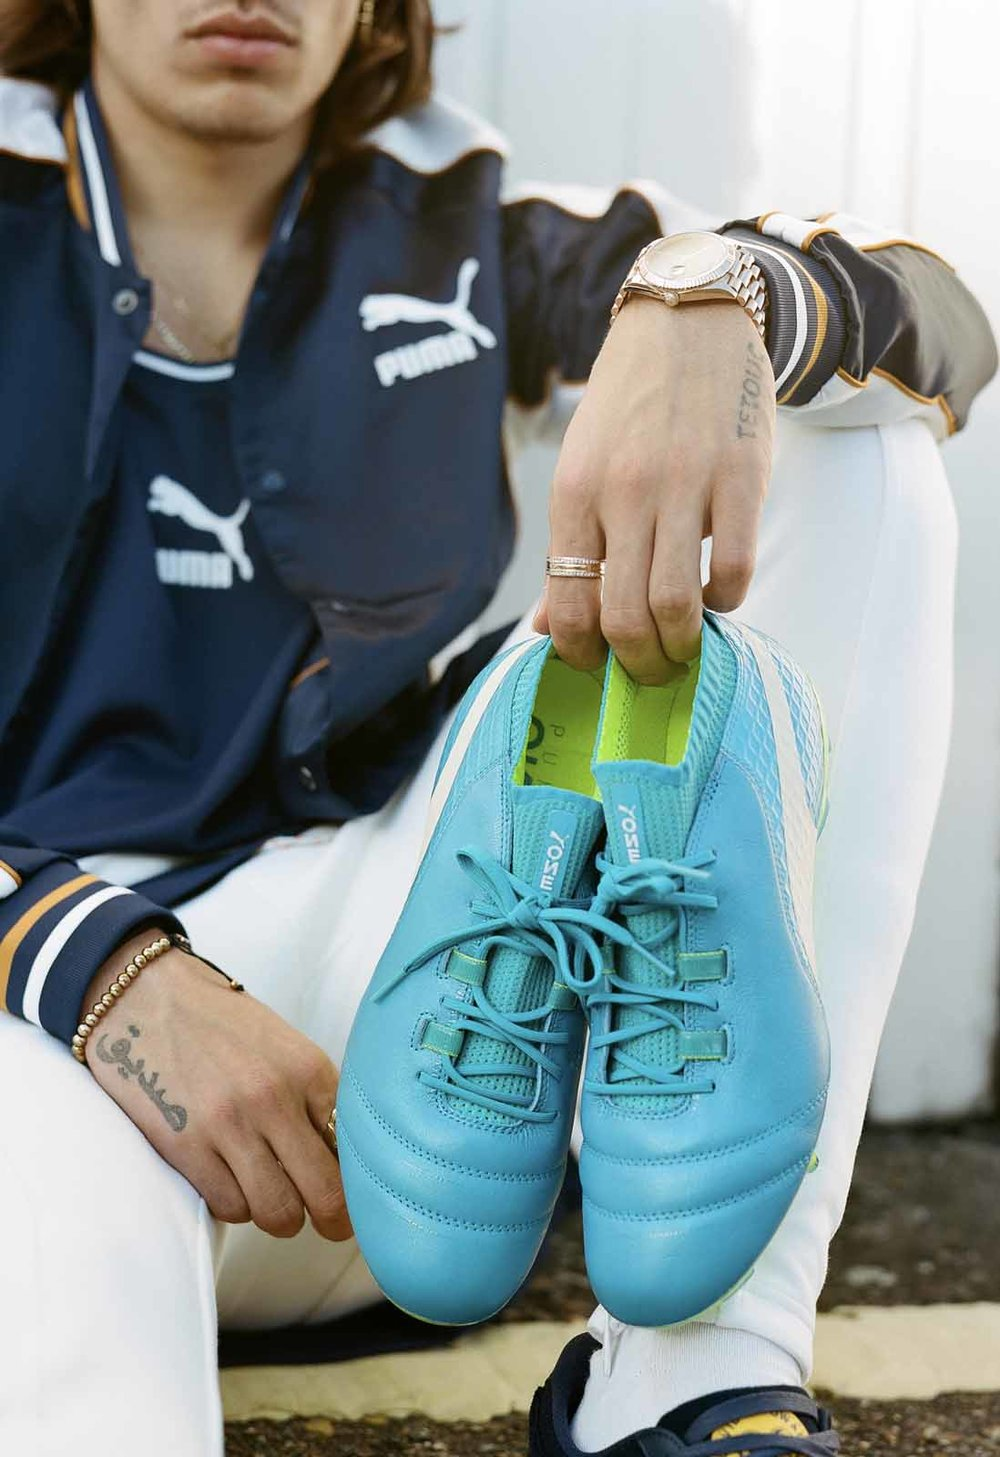 10-bellerin-one-lookbook-puma-min.jpg